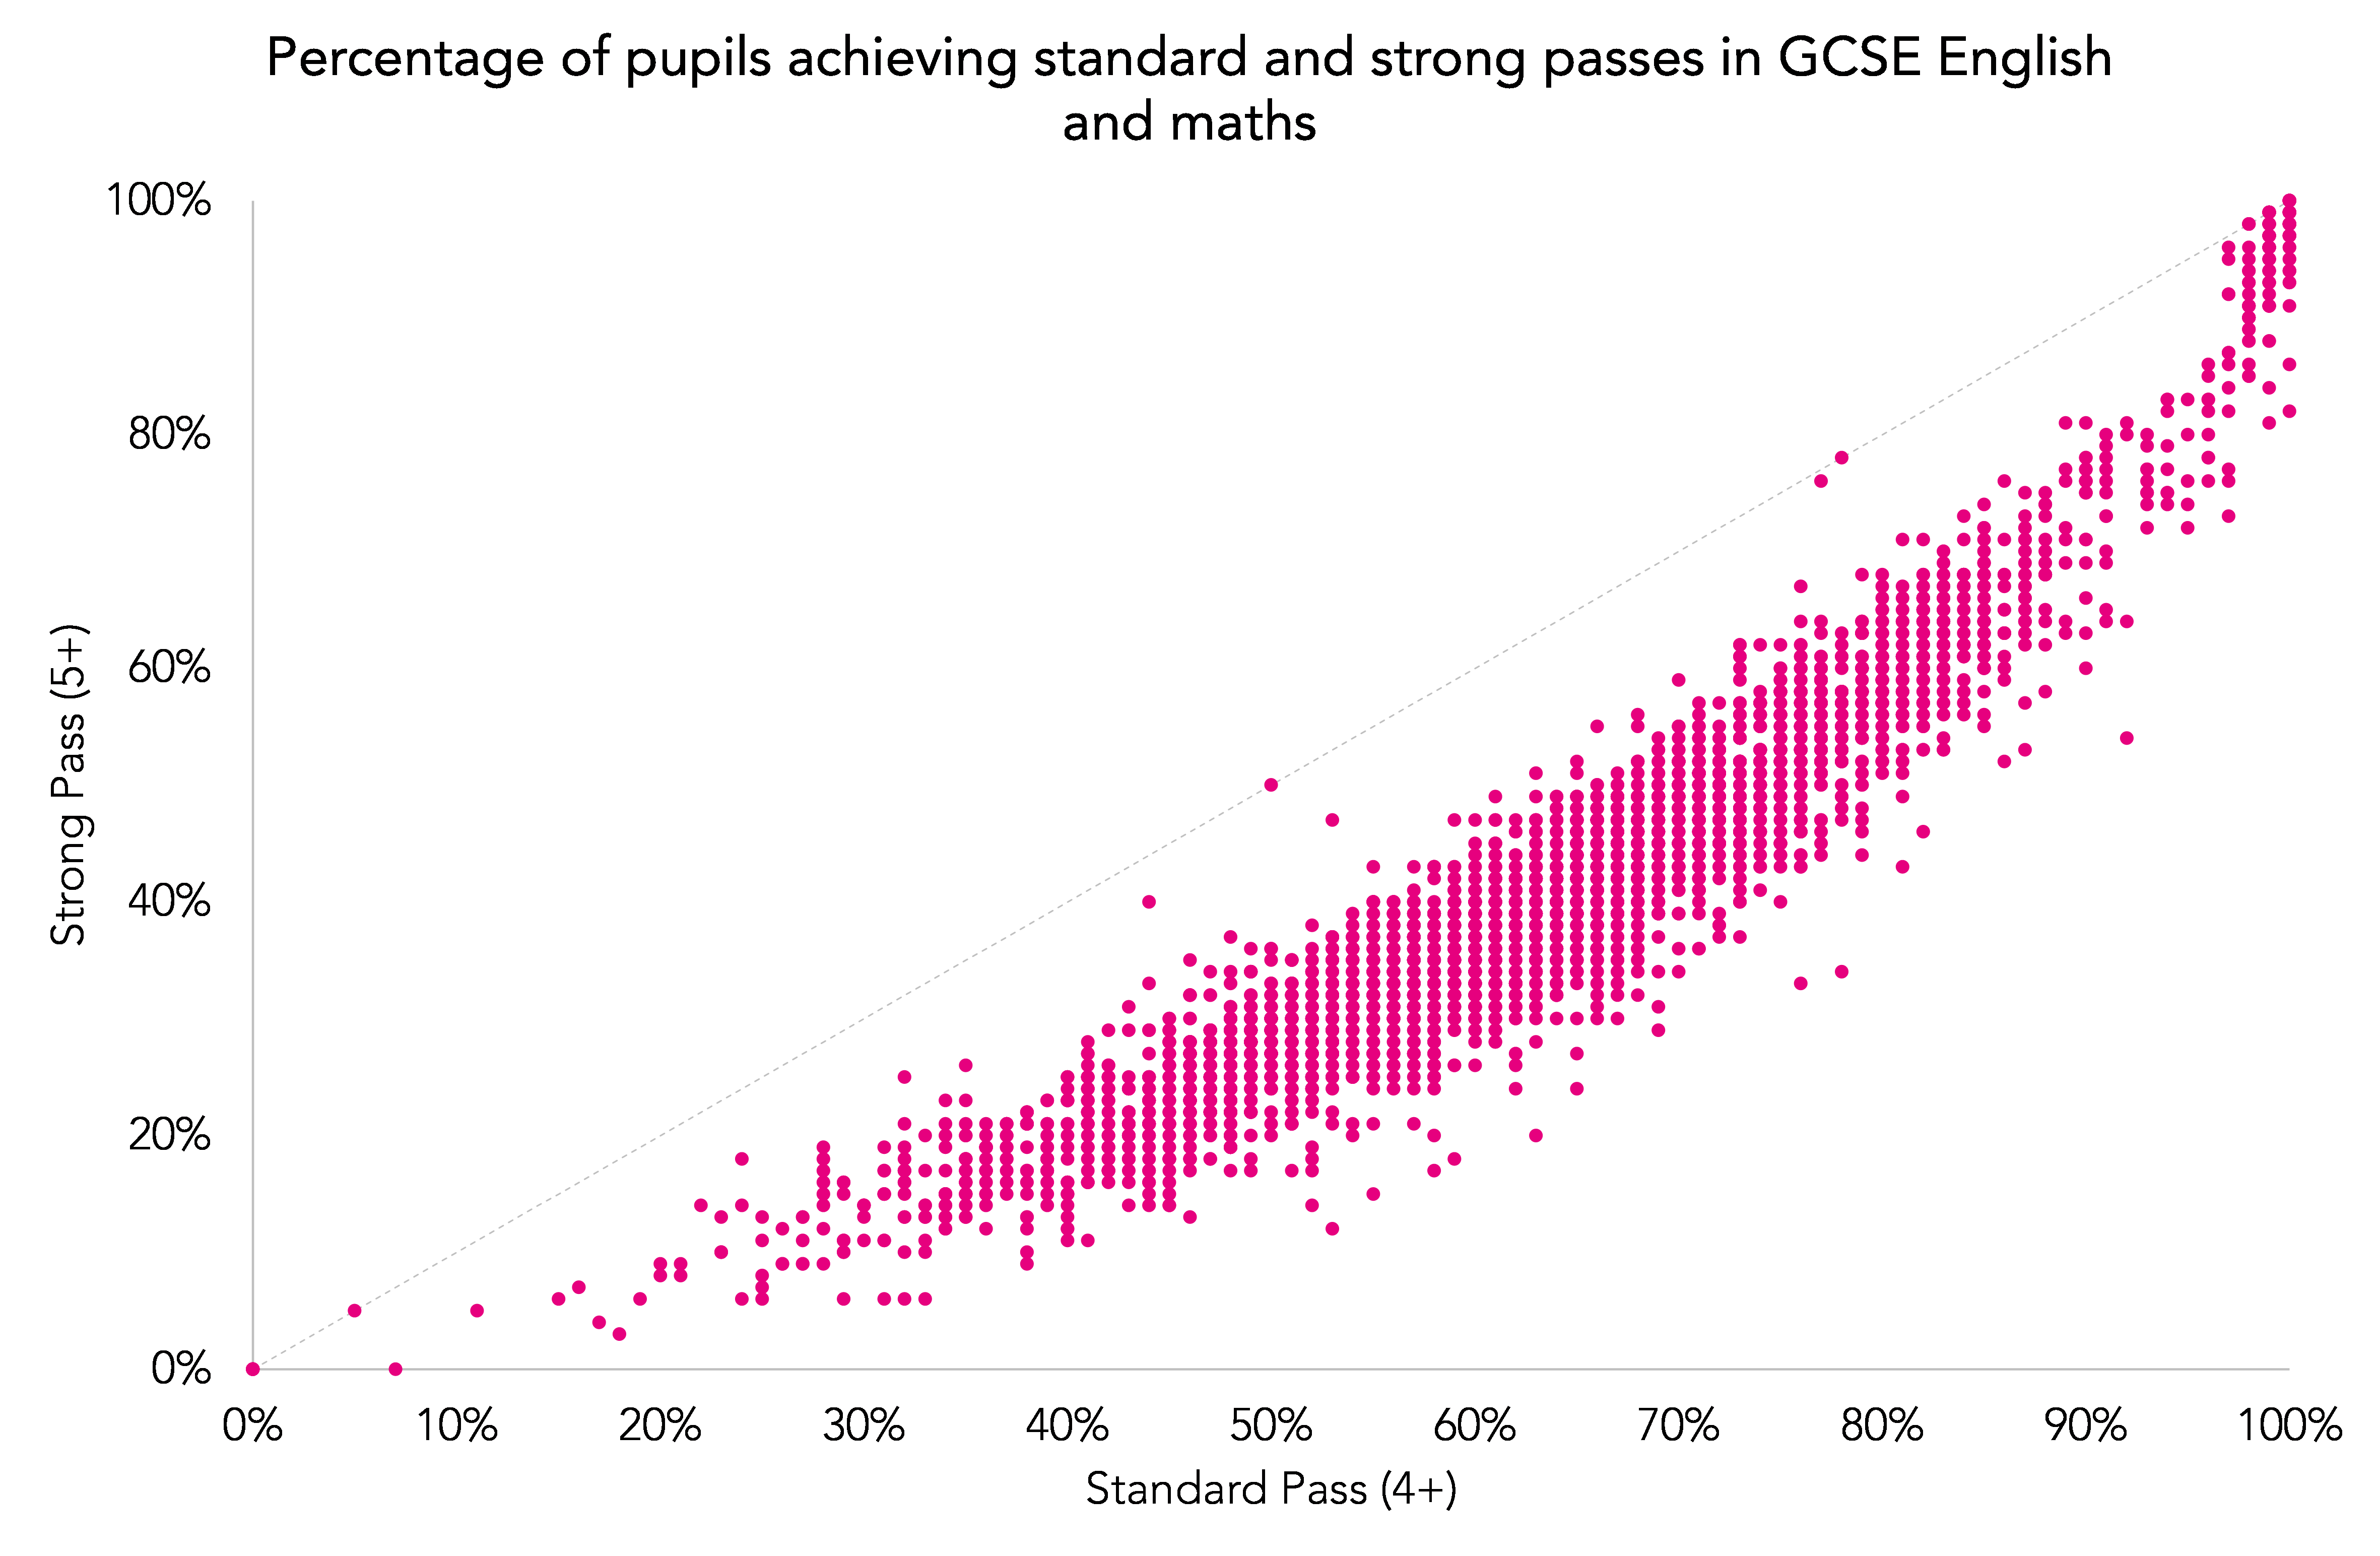 Standards Grades And Tests Are Wildly >> Provisional Ks4 Data 2017 Comparing Strong And Standard Gcse Pass